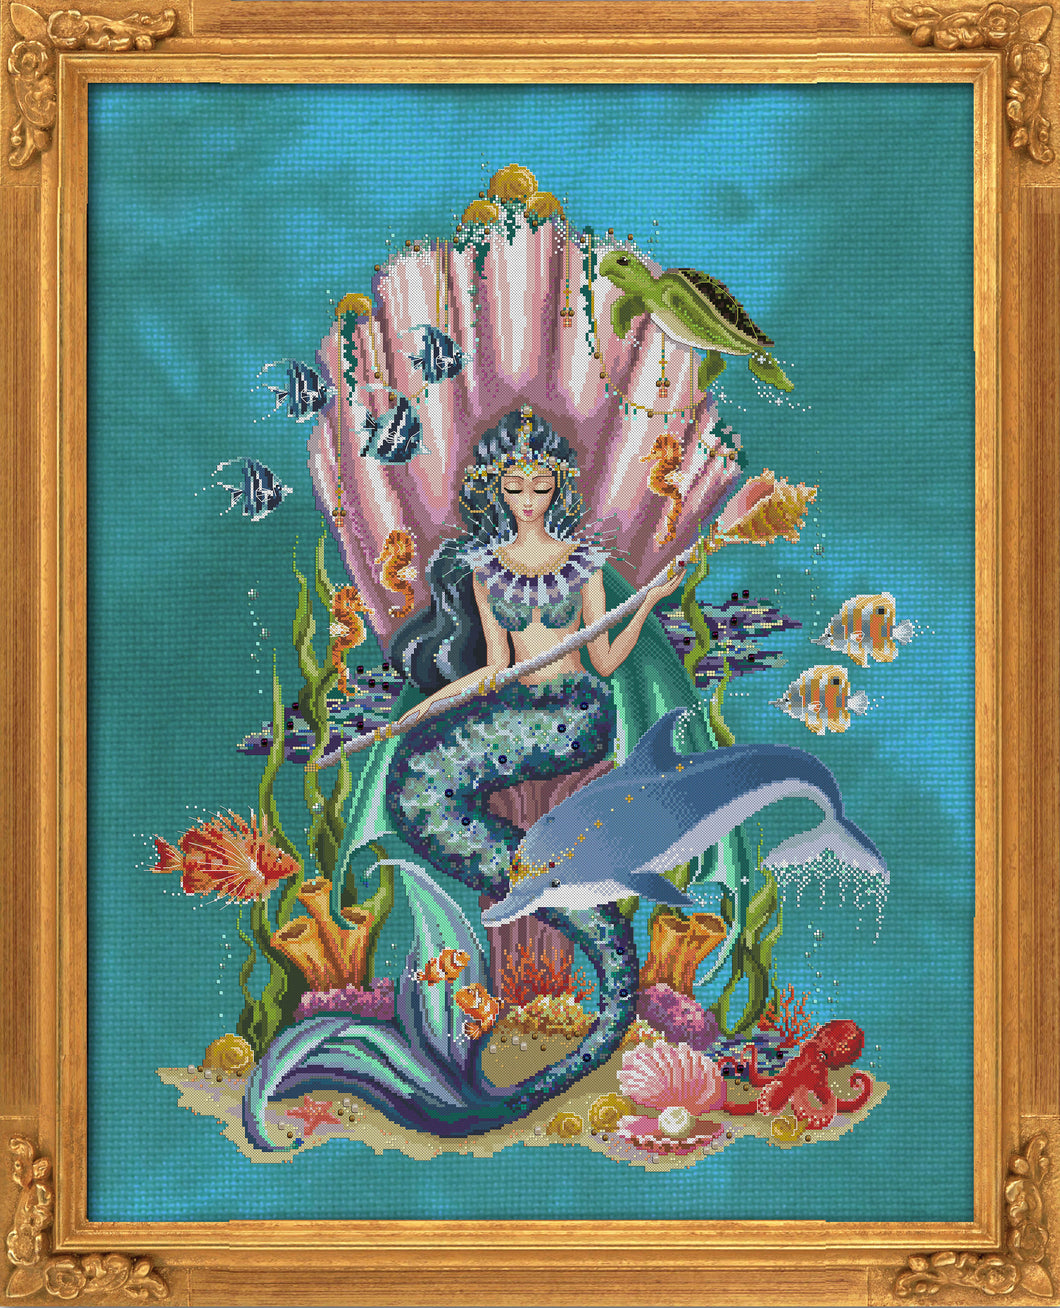 Amphitrite, Queen Goddess of the Sea